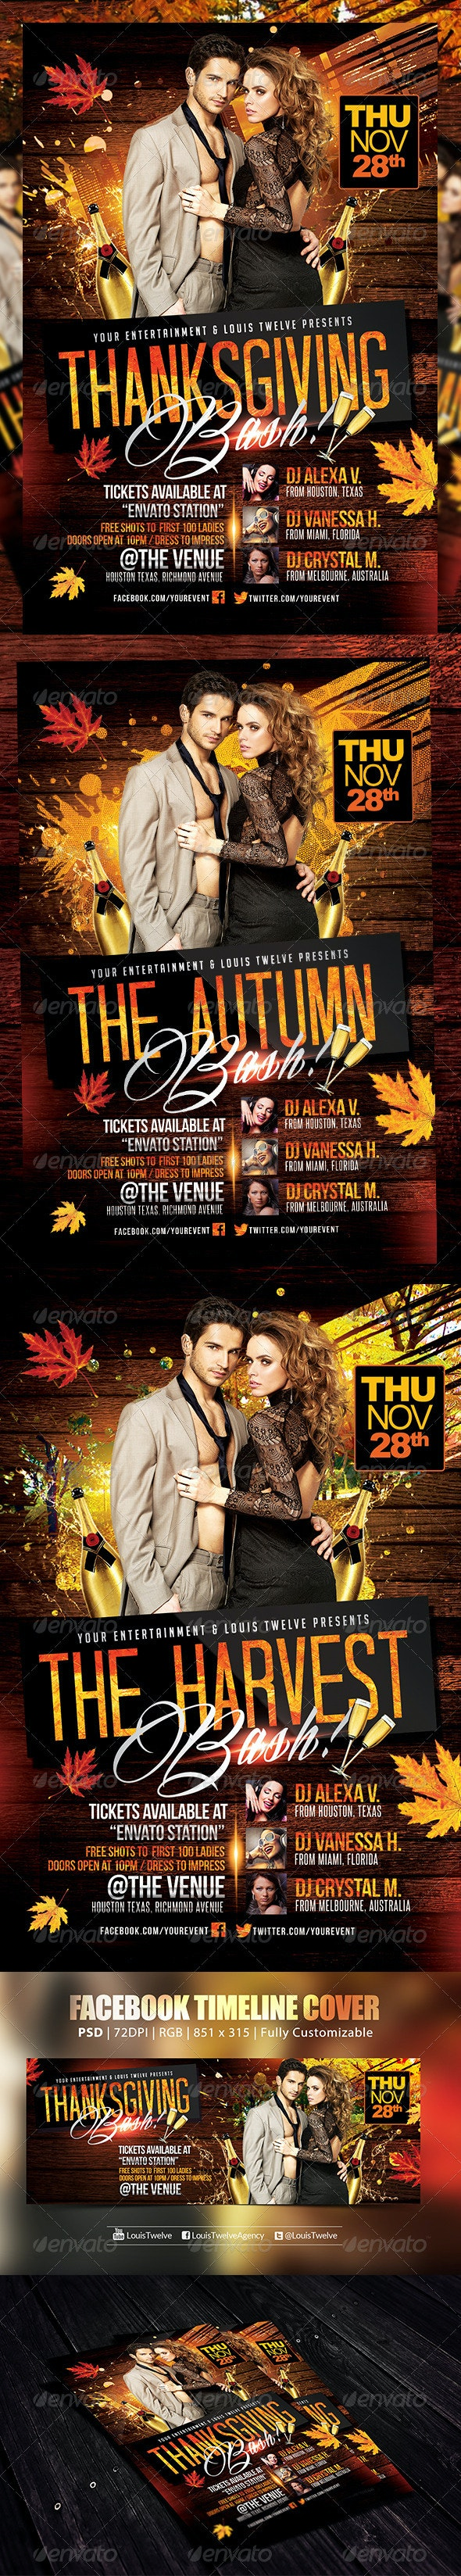 Thanksgiving or Autumn Bash | Flyer + FB Cover - Holidays Events